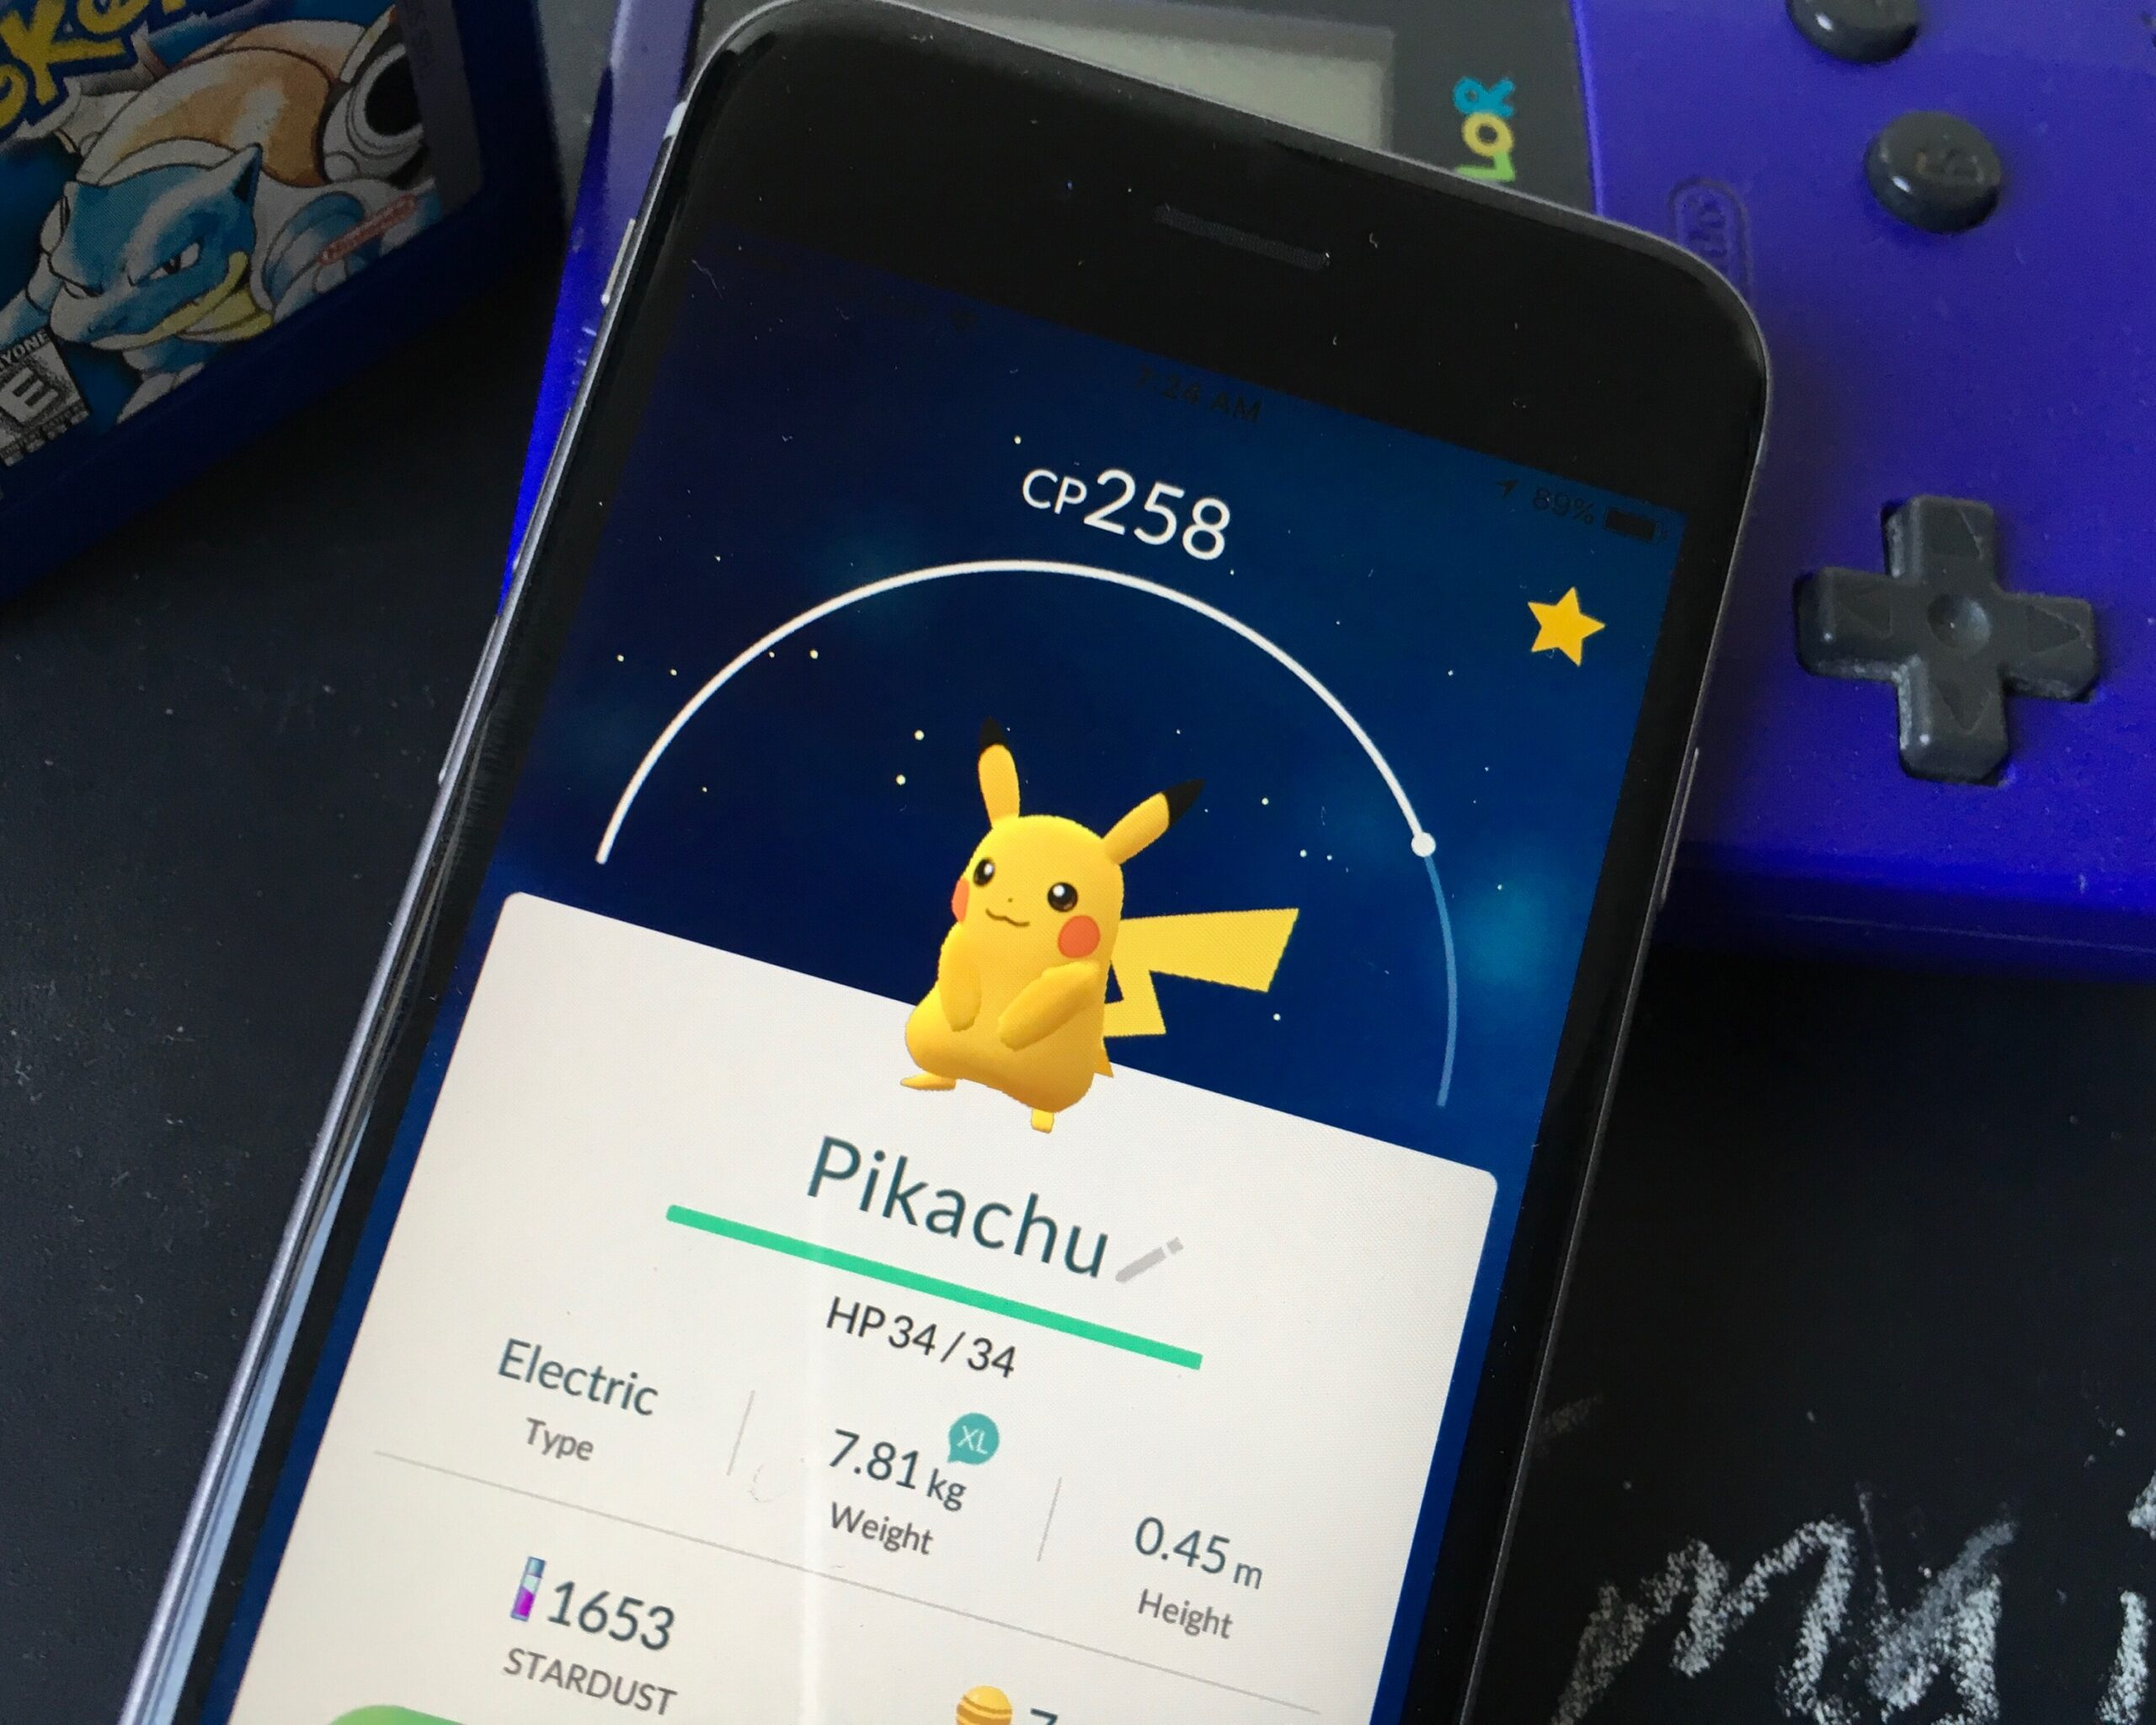 Pokemon Go probably didn't make its users more active after all